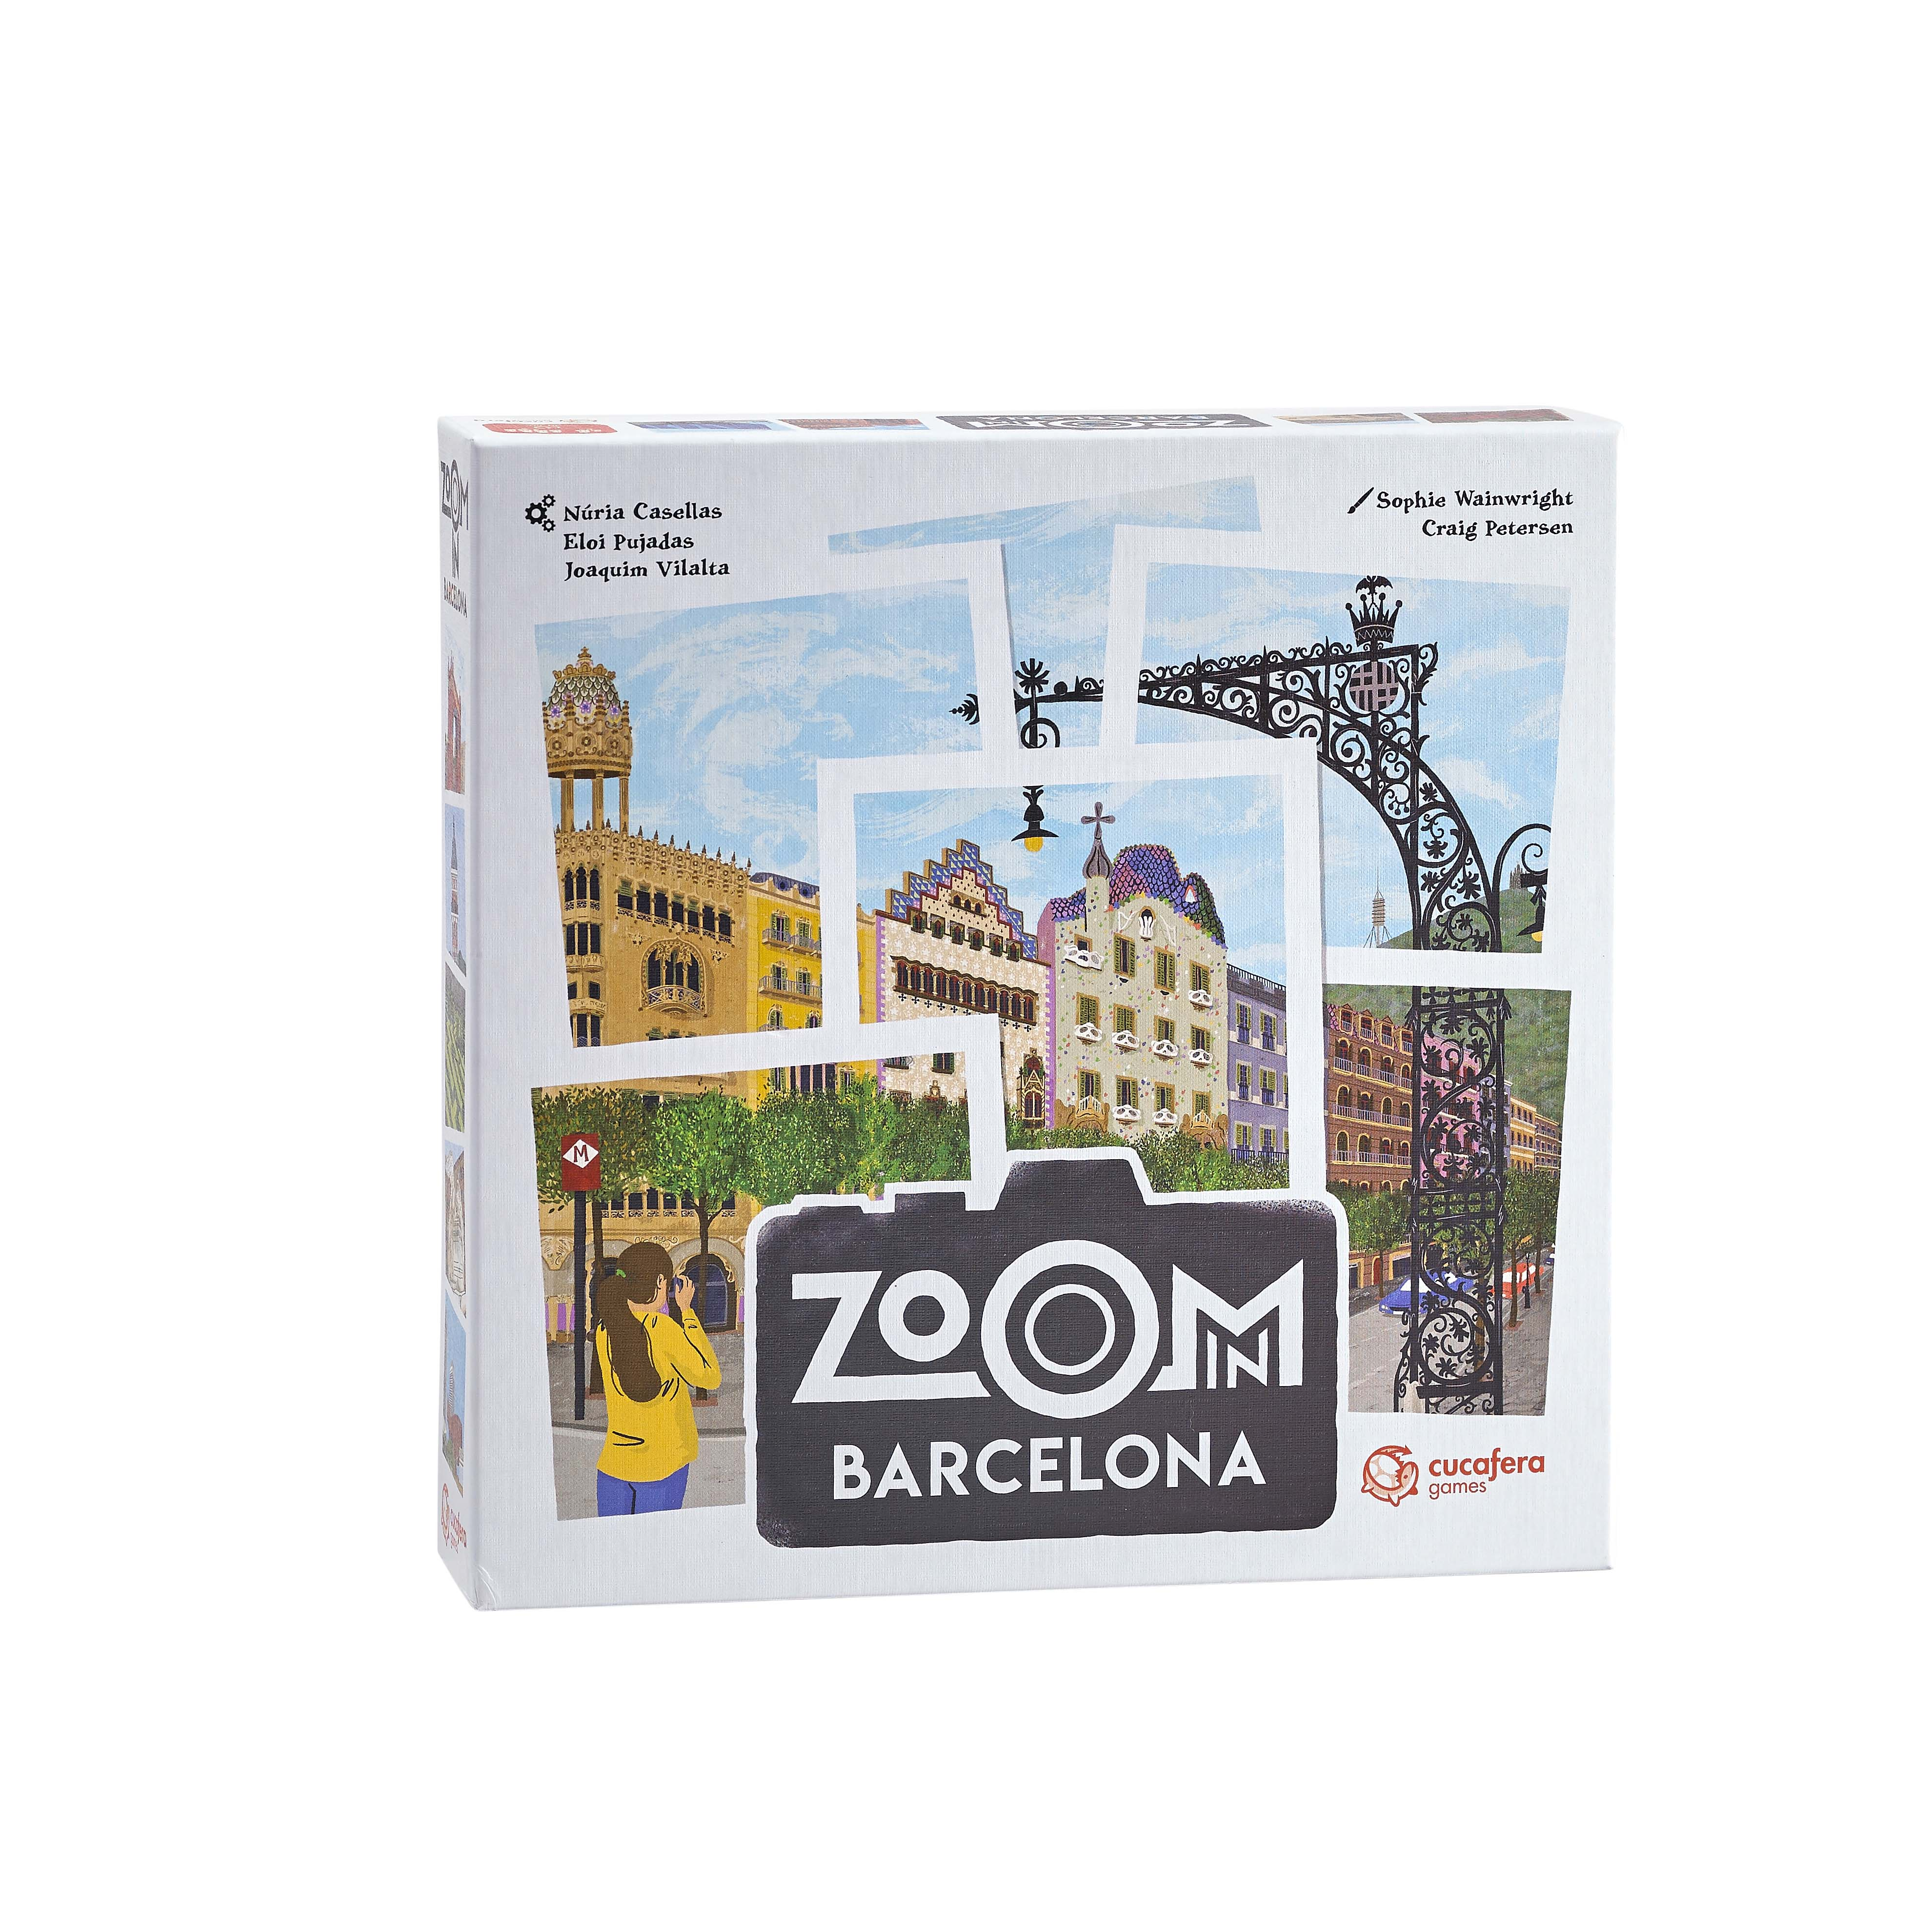 Image Zoom in Barcelona (multi)